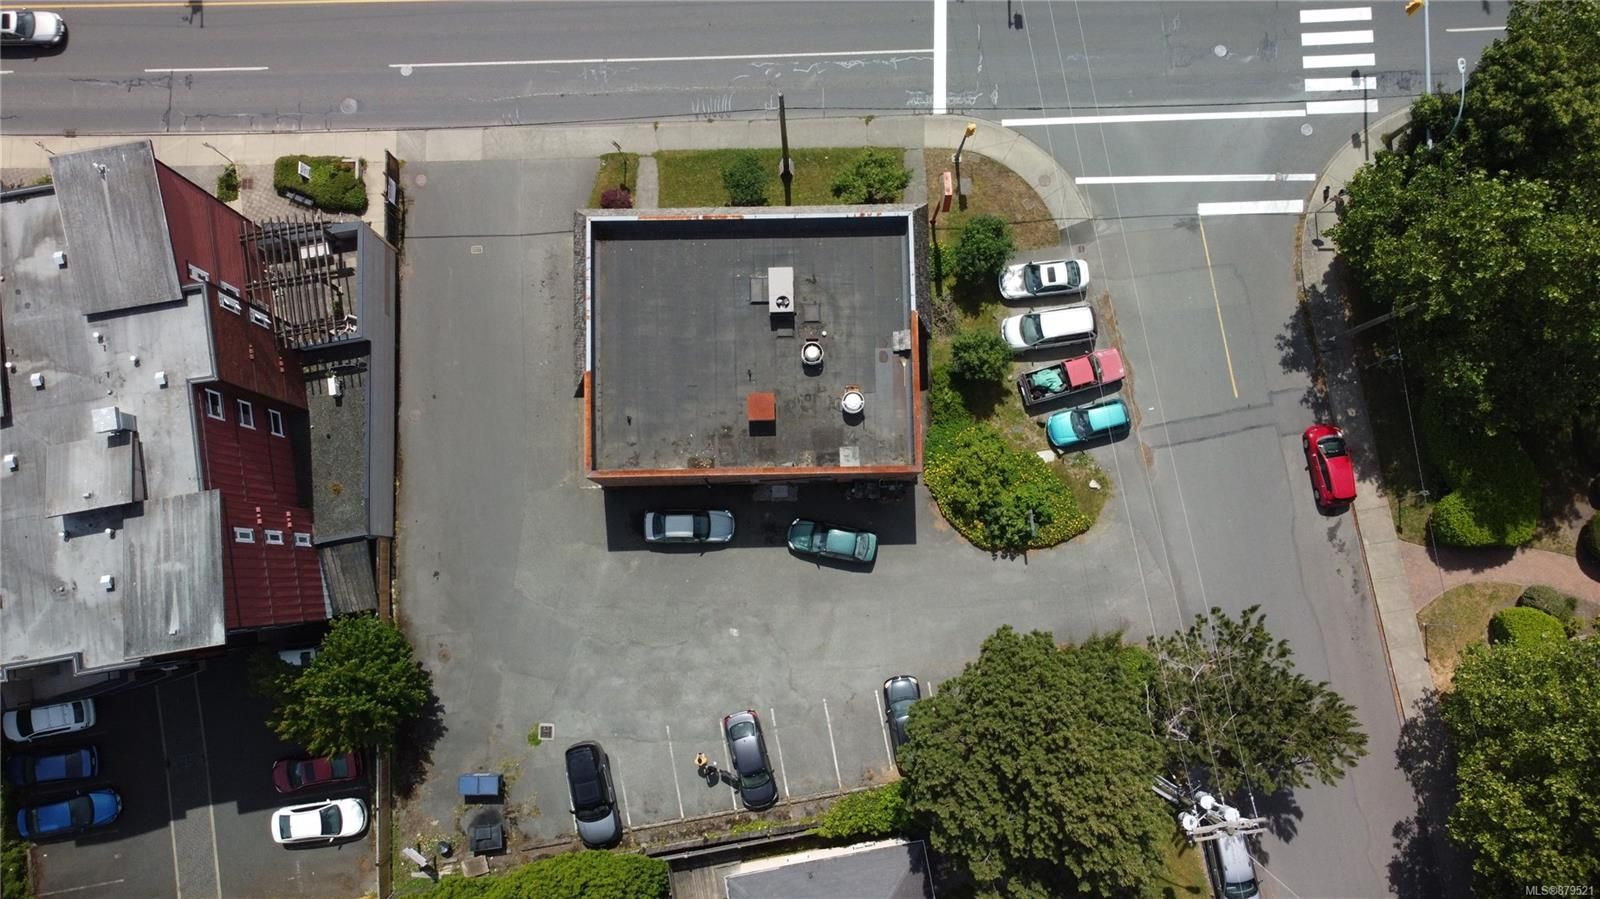 Main Photo: 90 W Gorge Rd in : SW Gorge Business for sale (Saanich West)  : MLS®# 879521